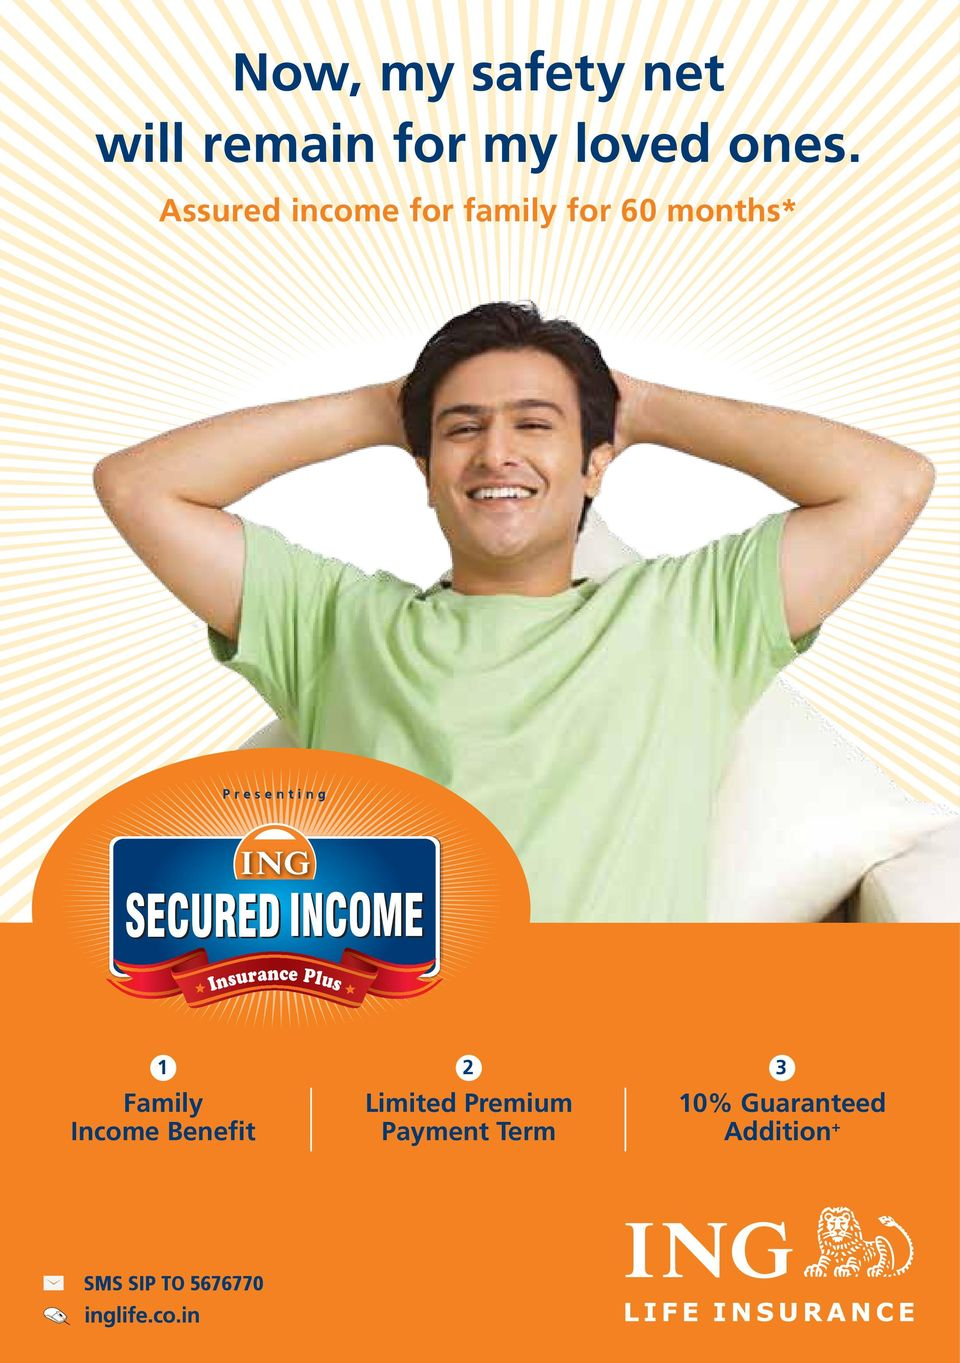 months* SECURED INCOME Insurance Plus 1 2 3 Family Income Benefit Limited